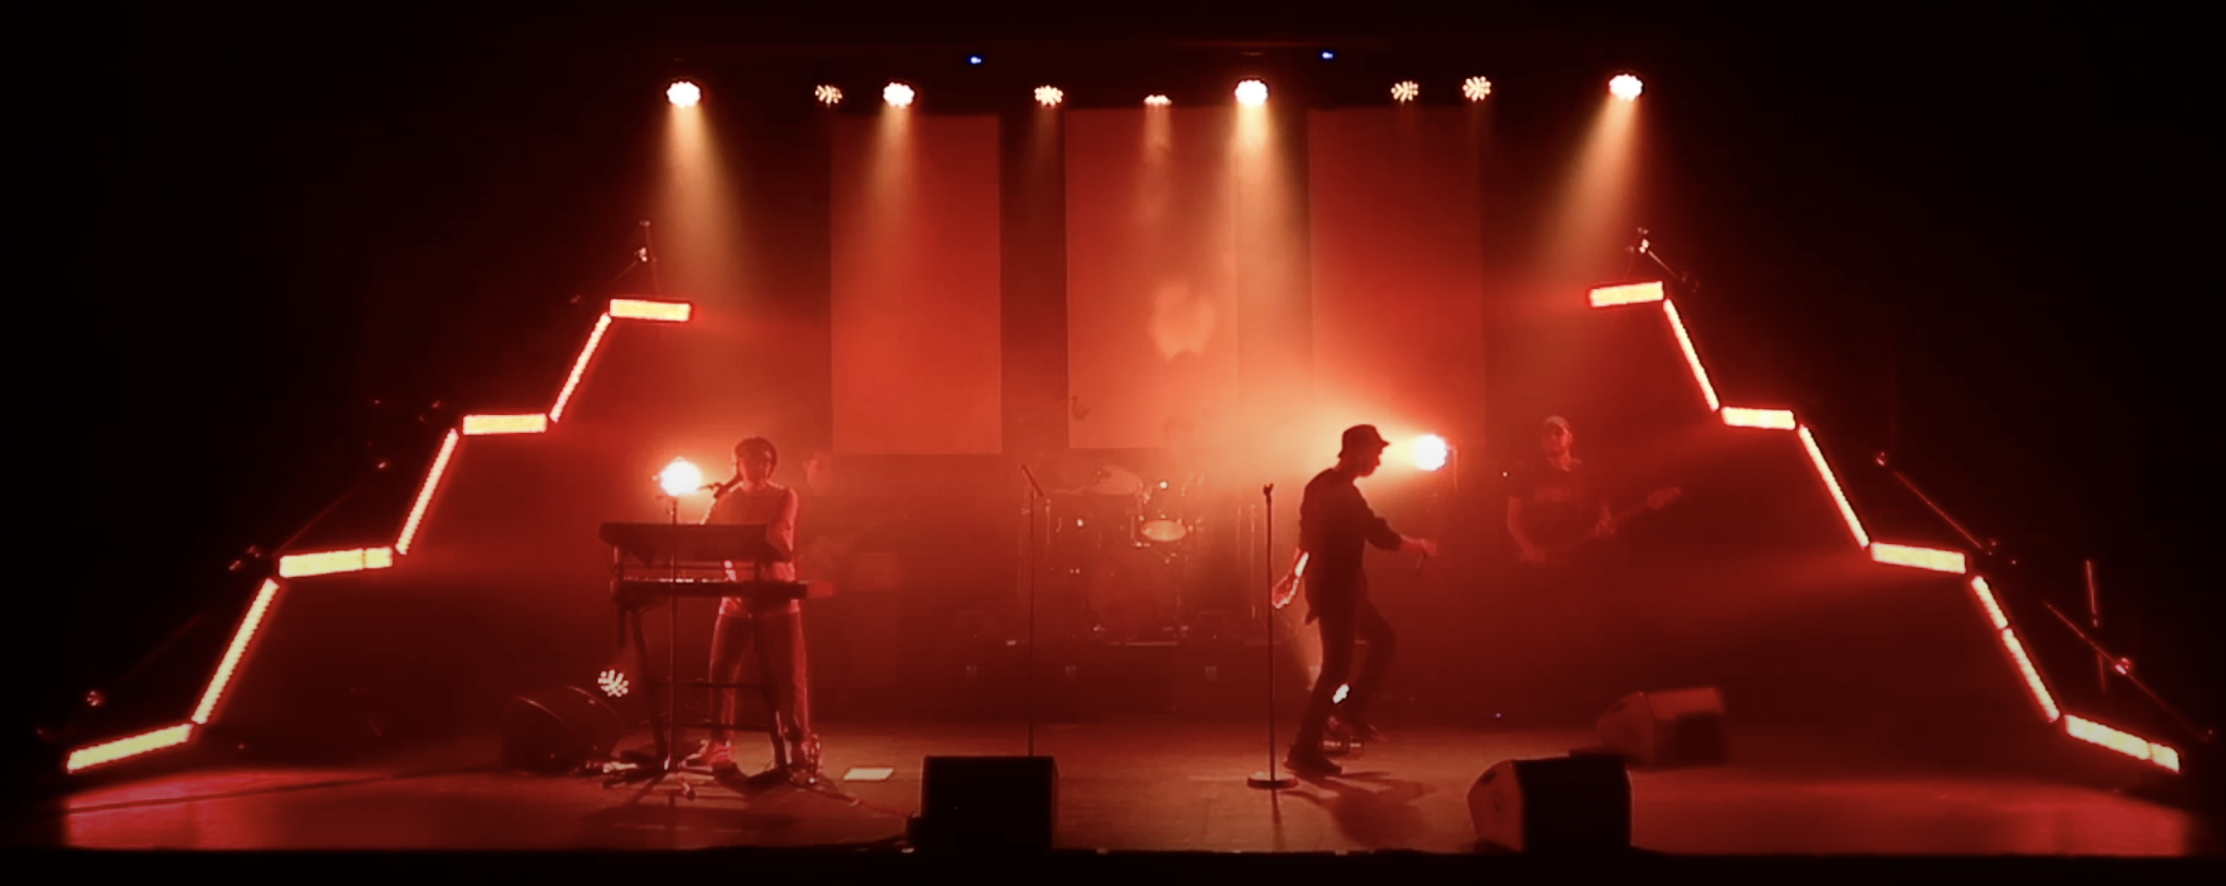 ÎVA live on stage - from the Nordic Remix case video